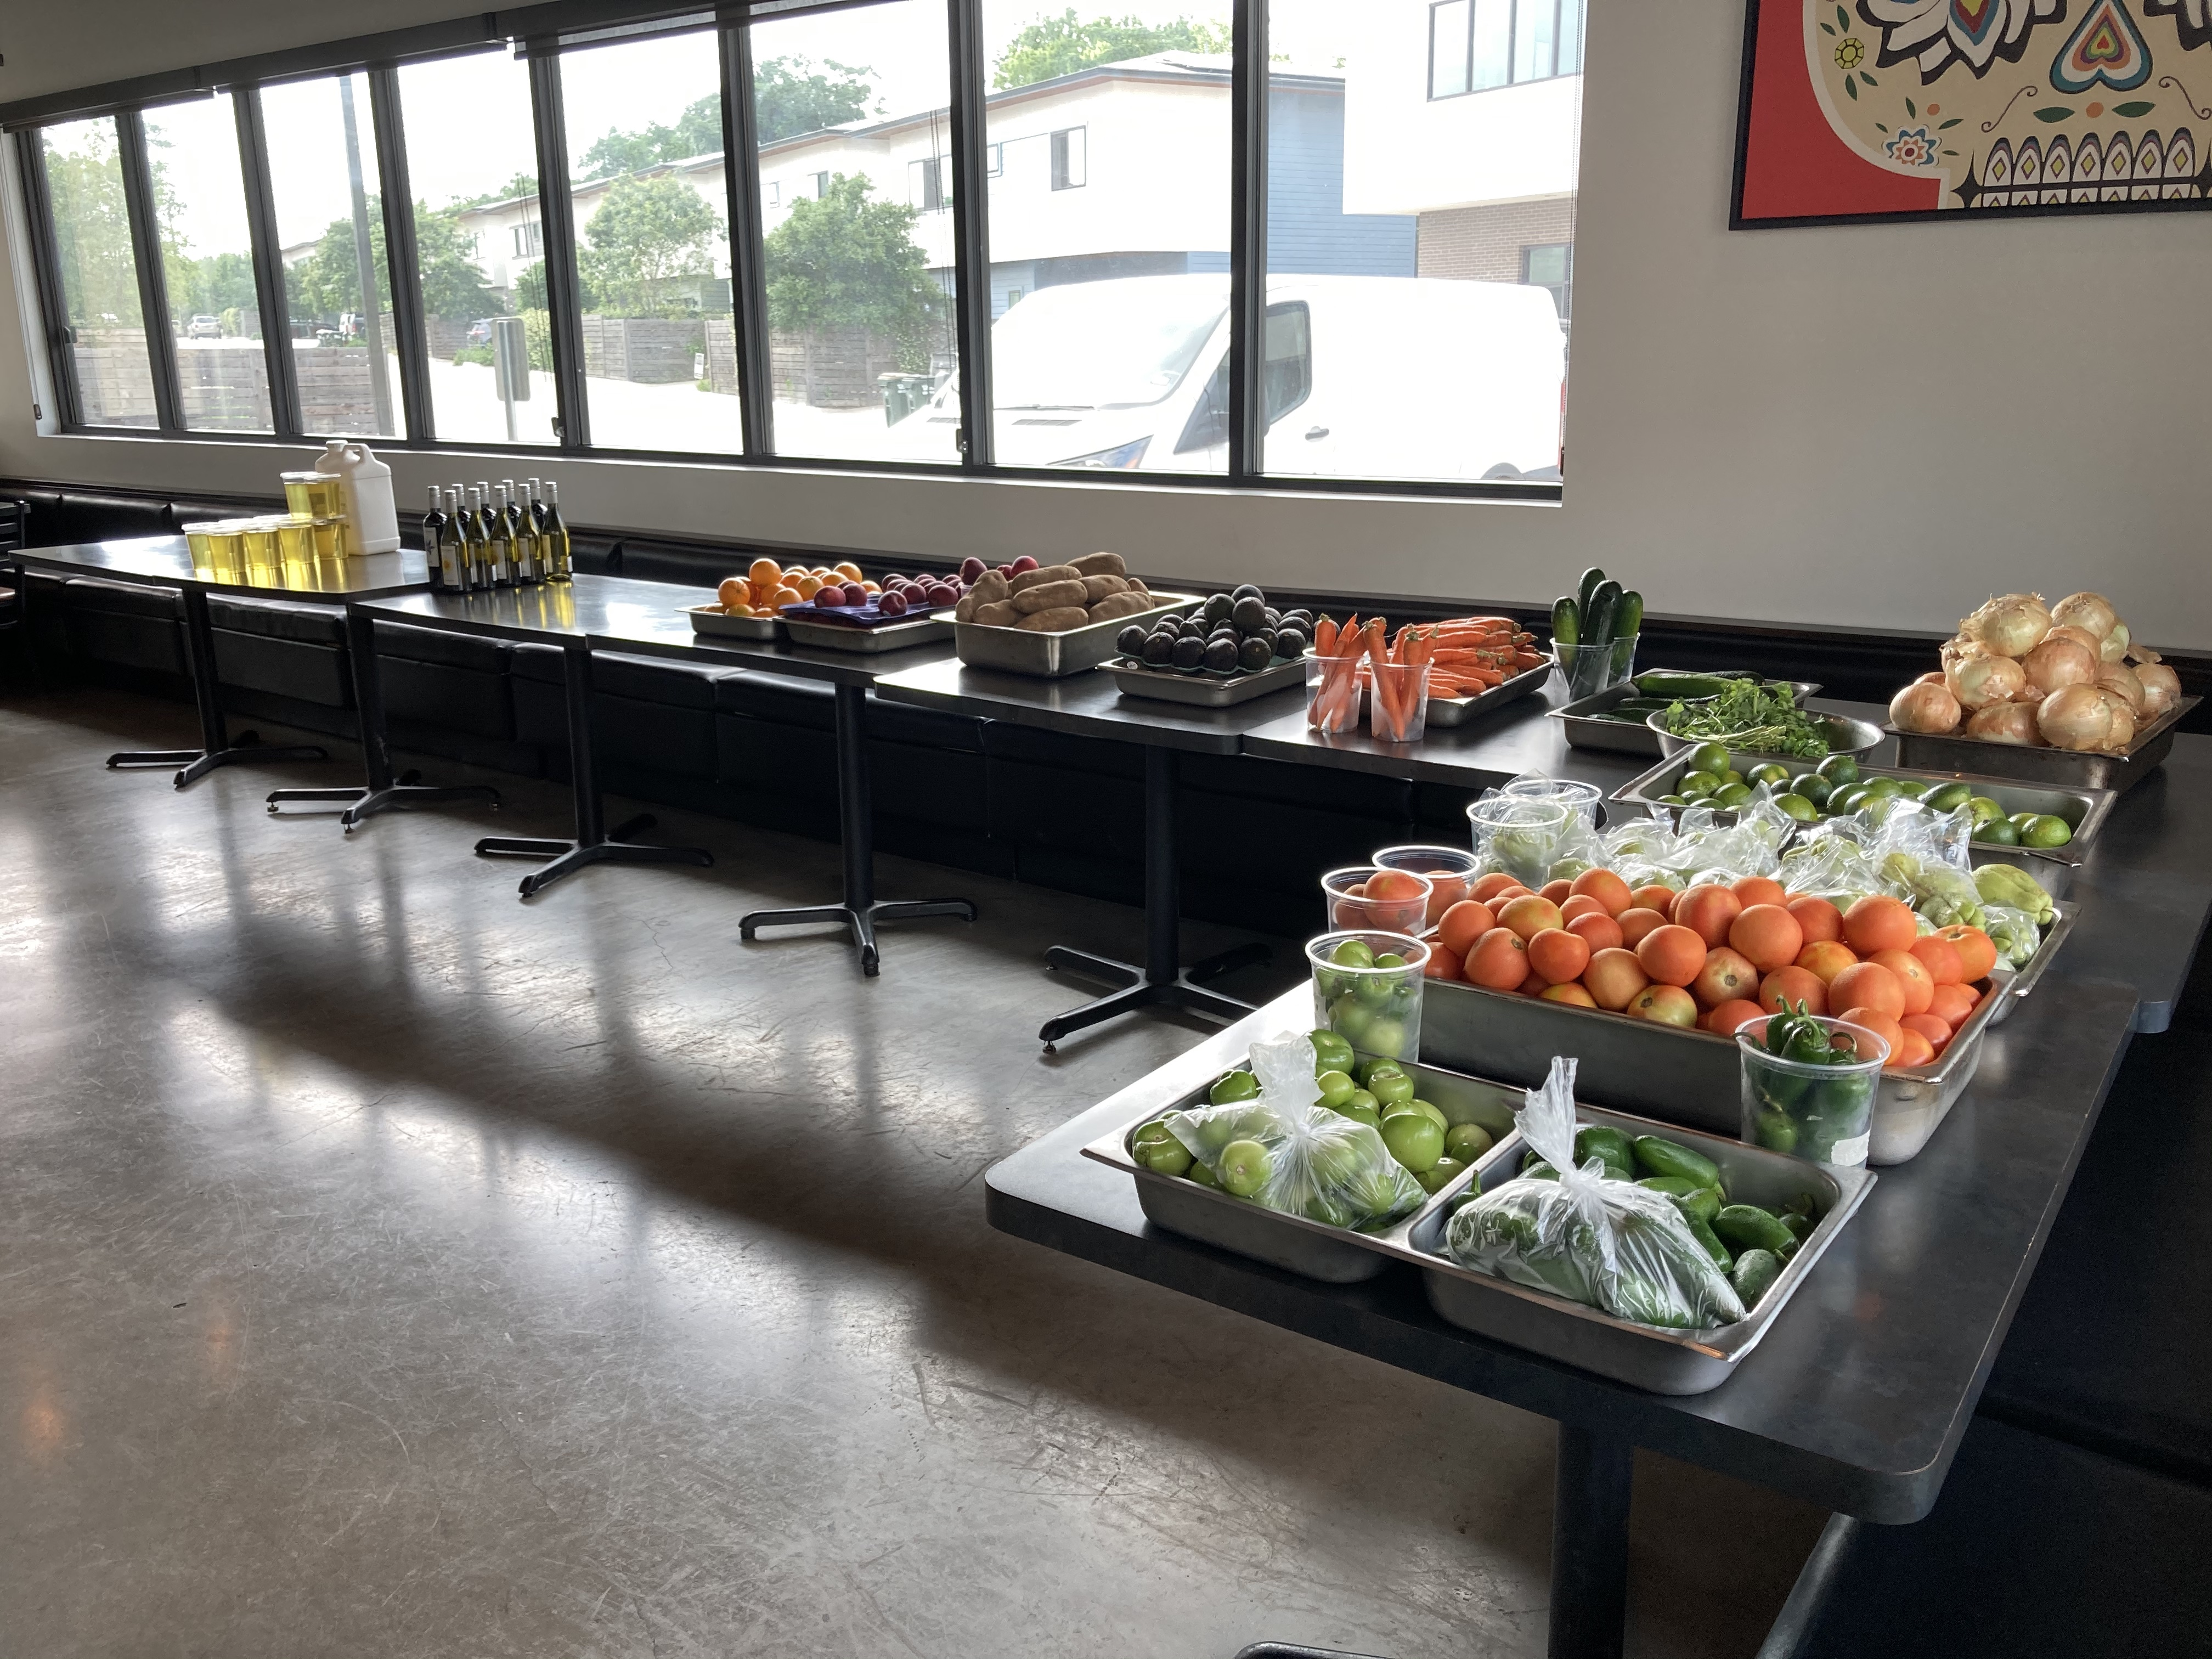 The Neighborhood Pop-Up Grocery market setup at Hecho en Mexico